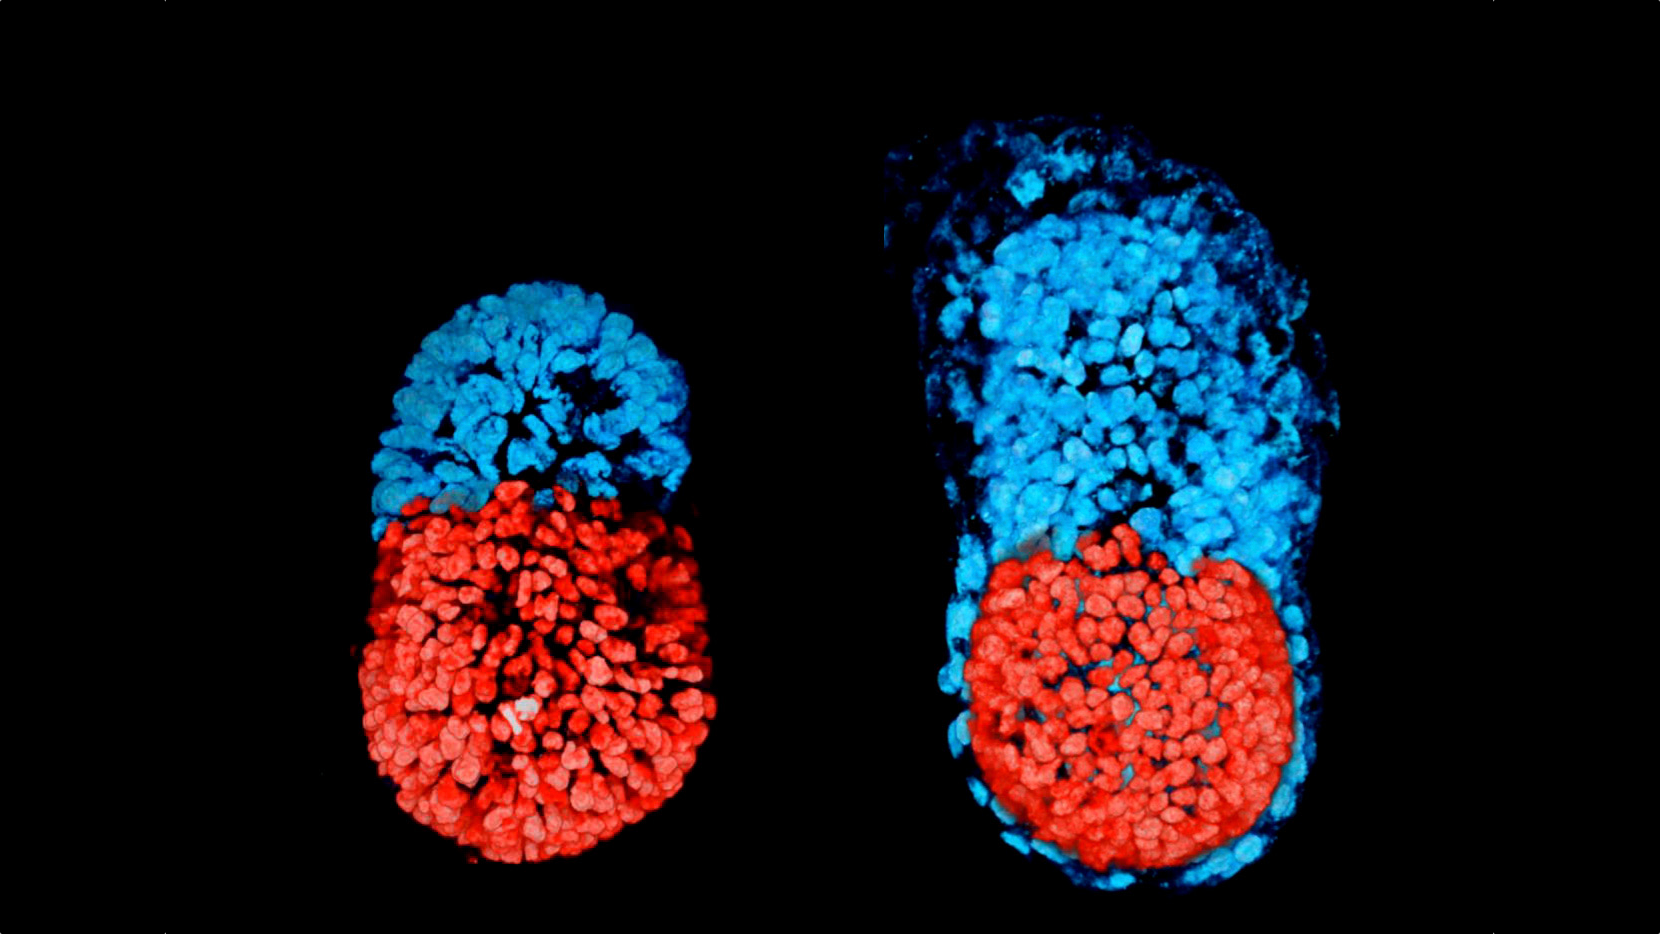 Artificial embryo created for first time in historic breakthrough